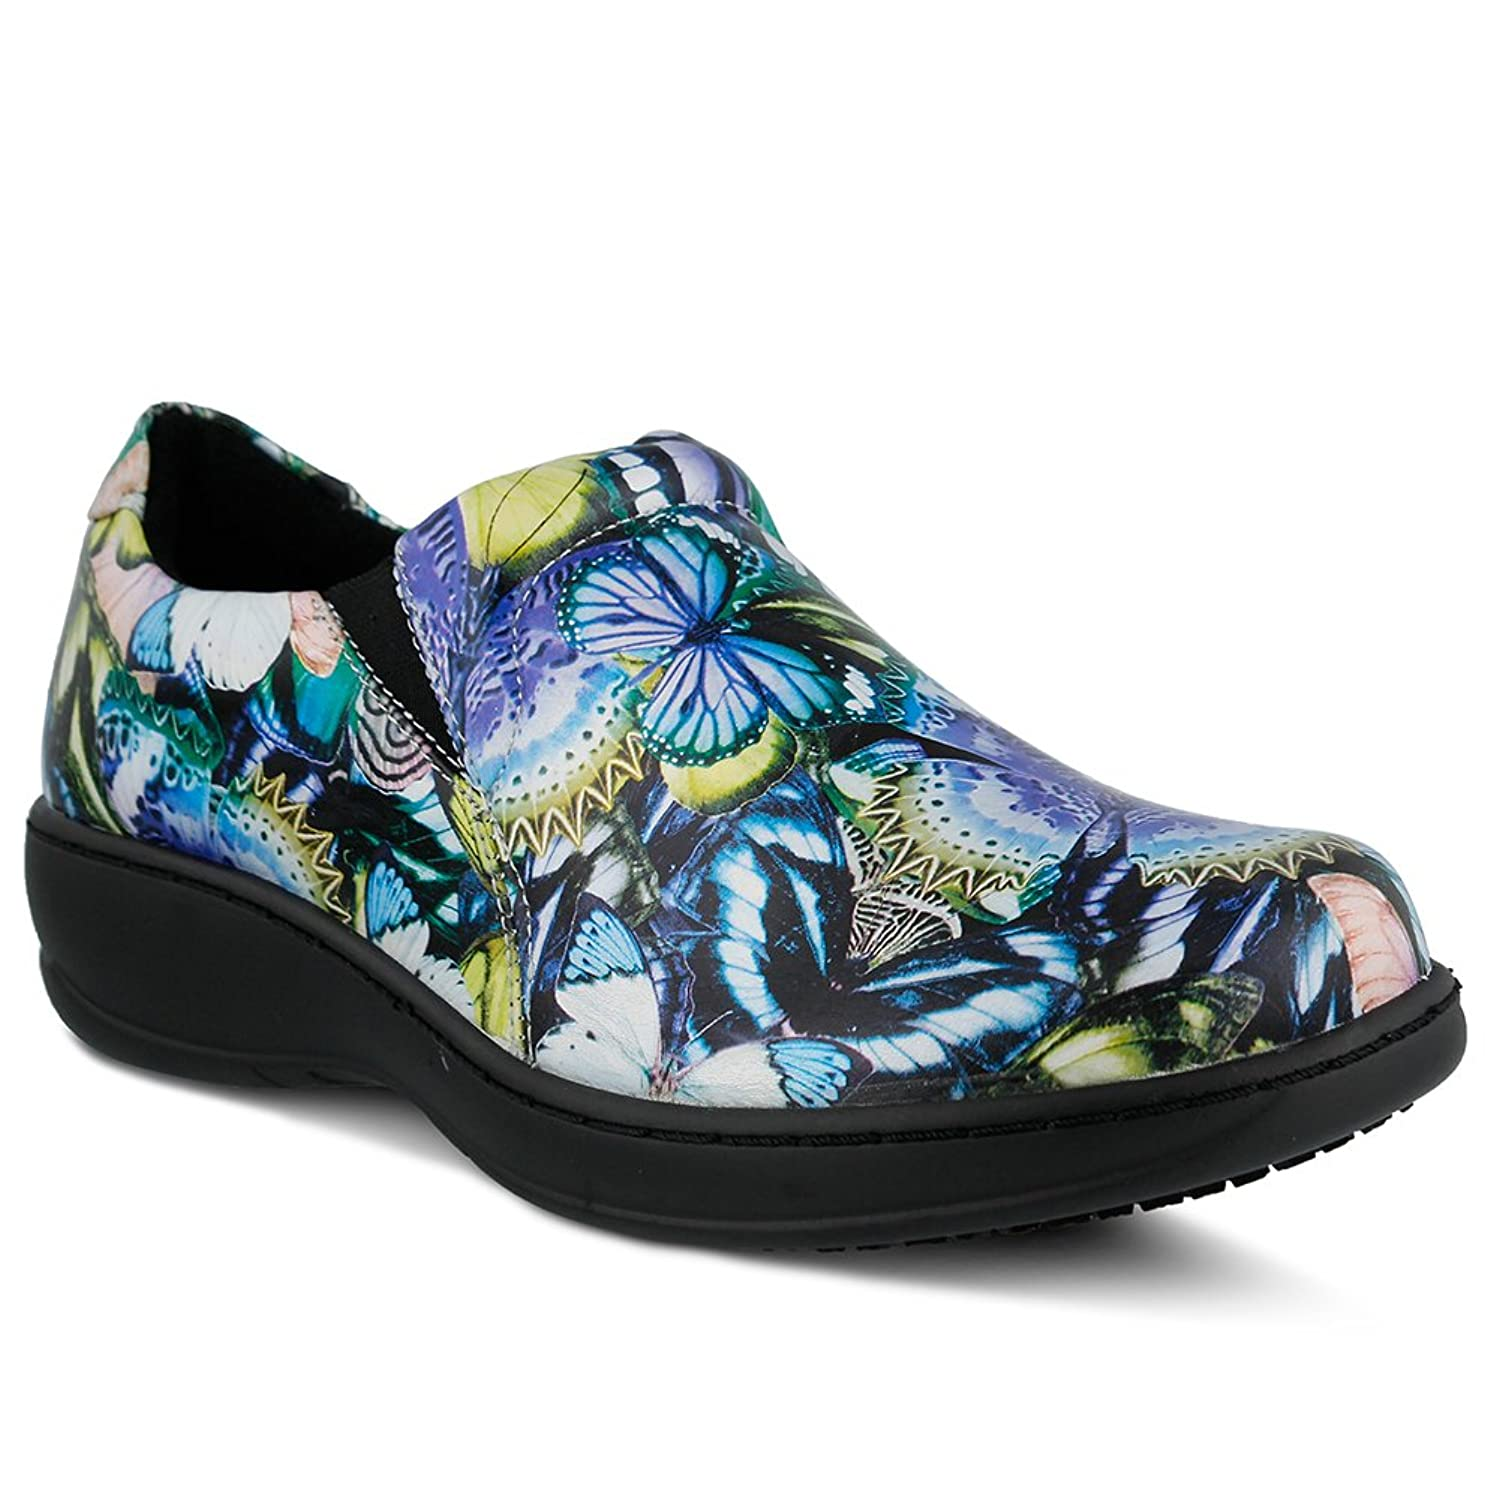 Spring Step Professional Womens Winfrey Vibe Shoe, BLUE MULTI, Size - 5.5